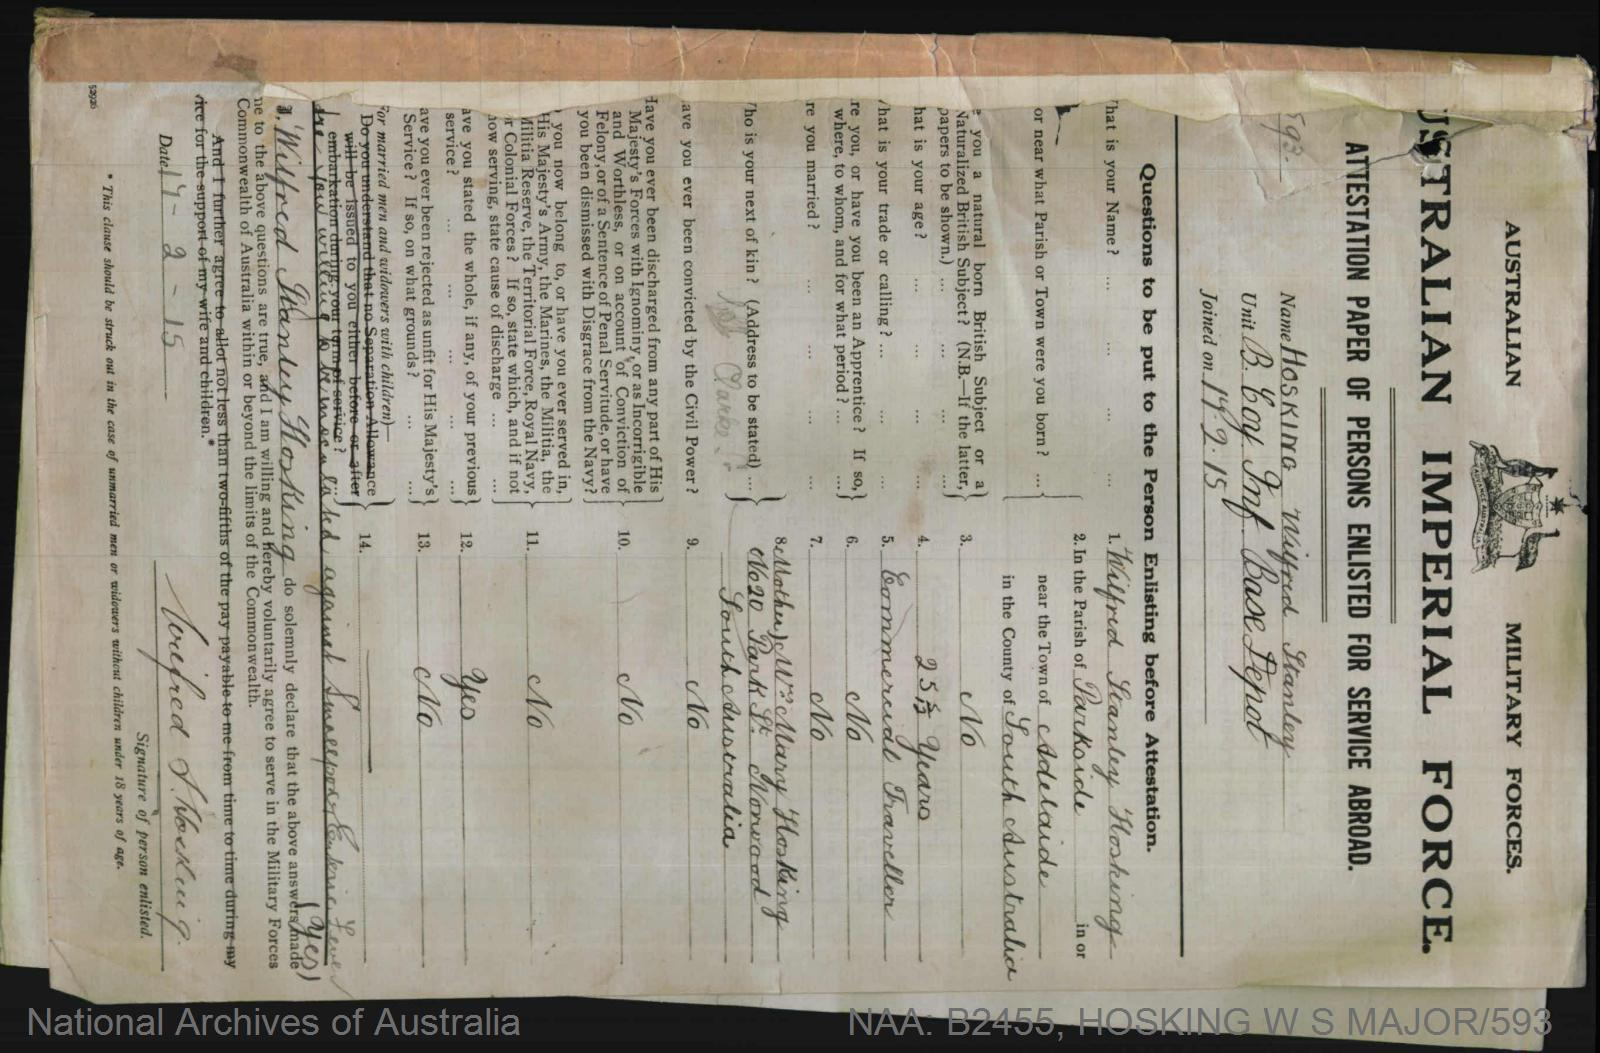 HOSKING Wilfred Stanley : Service Number - Major/593 : Place of Birth - Adelaide SA : Place of Enlistment - Keswick SA : Next of Kin - (Mother) HOSKING Mary